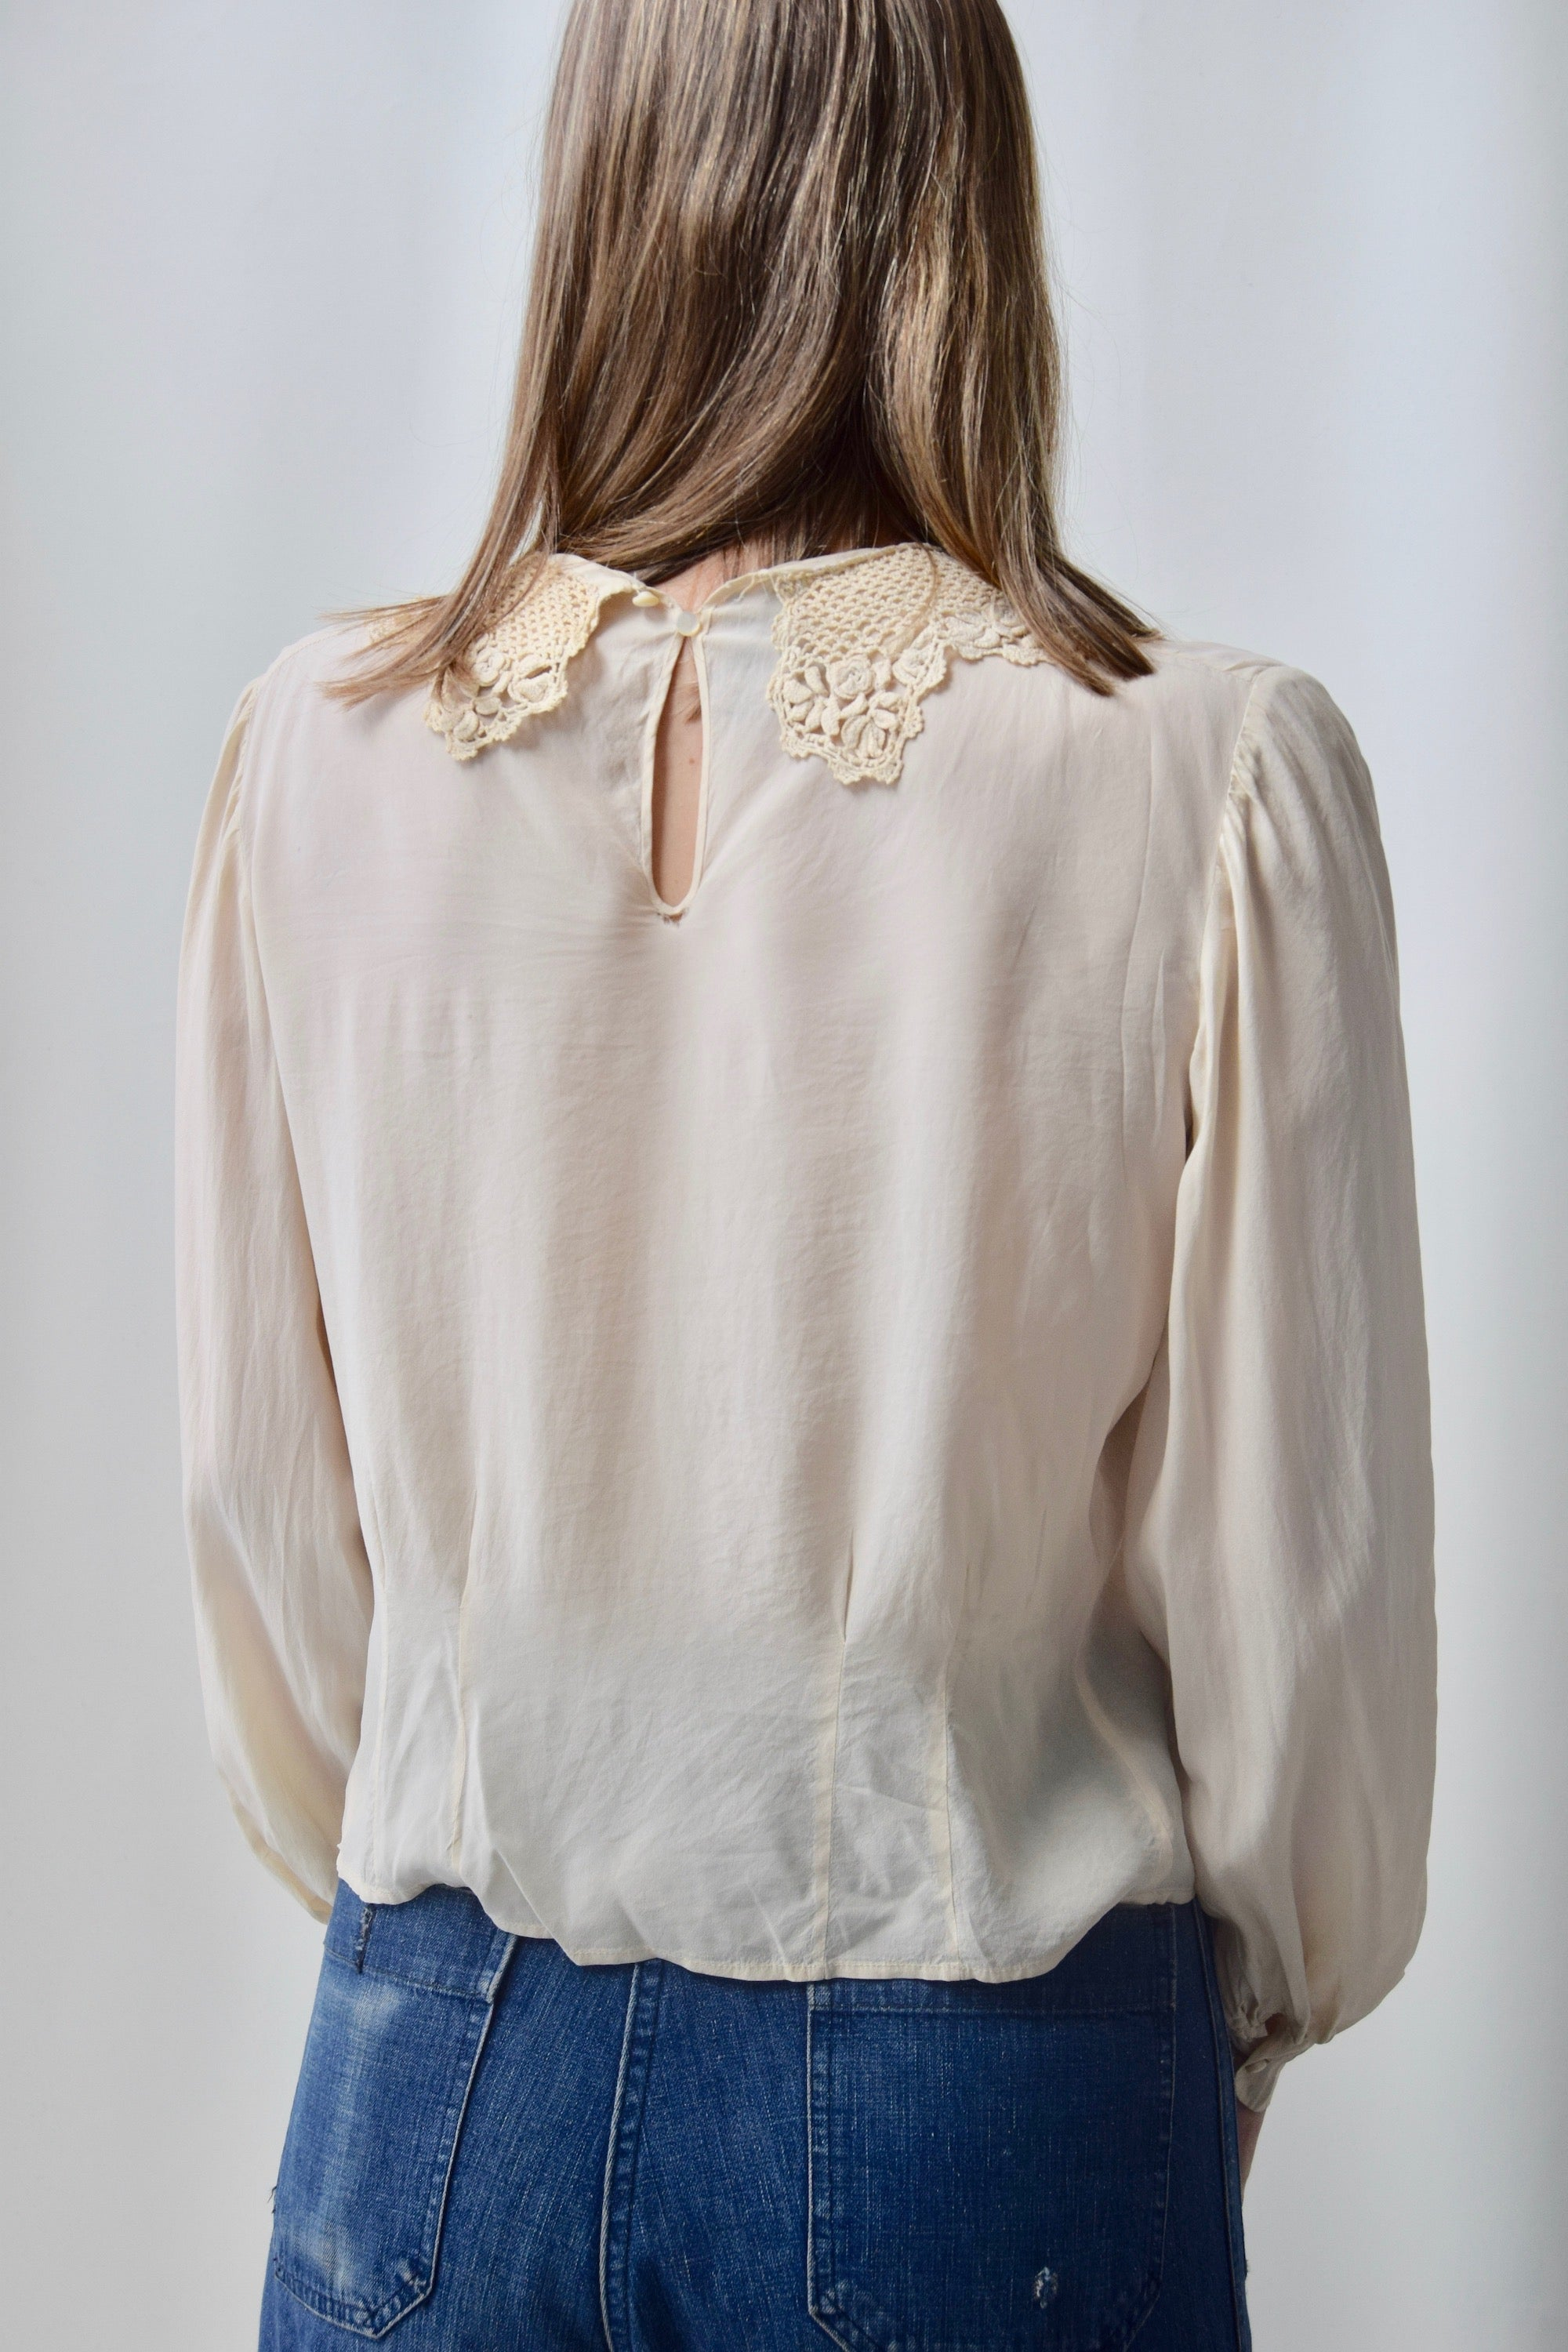 Olden Crocheted Collar Ivory Silk Blouse